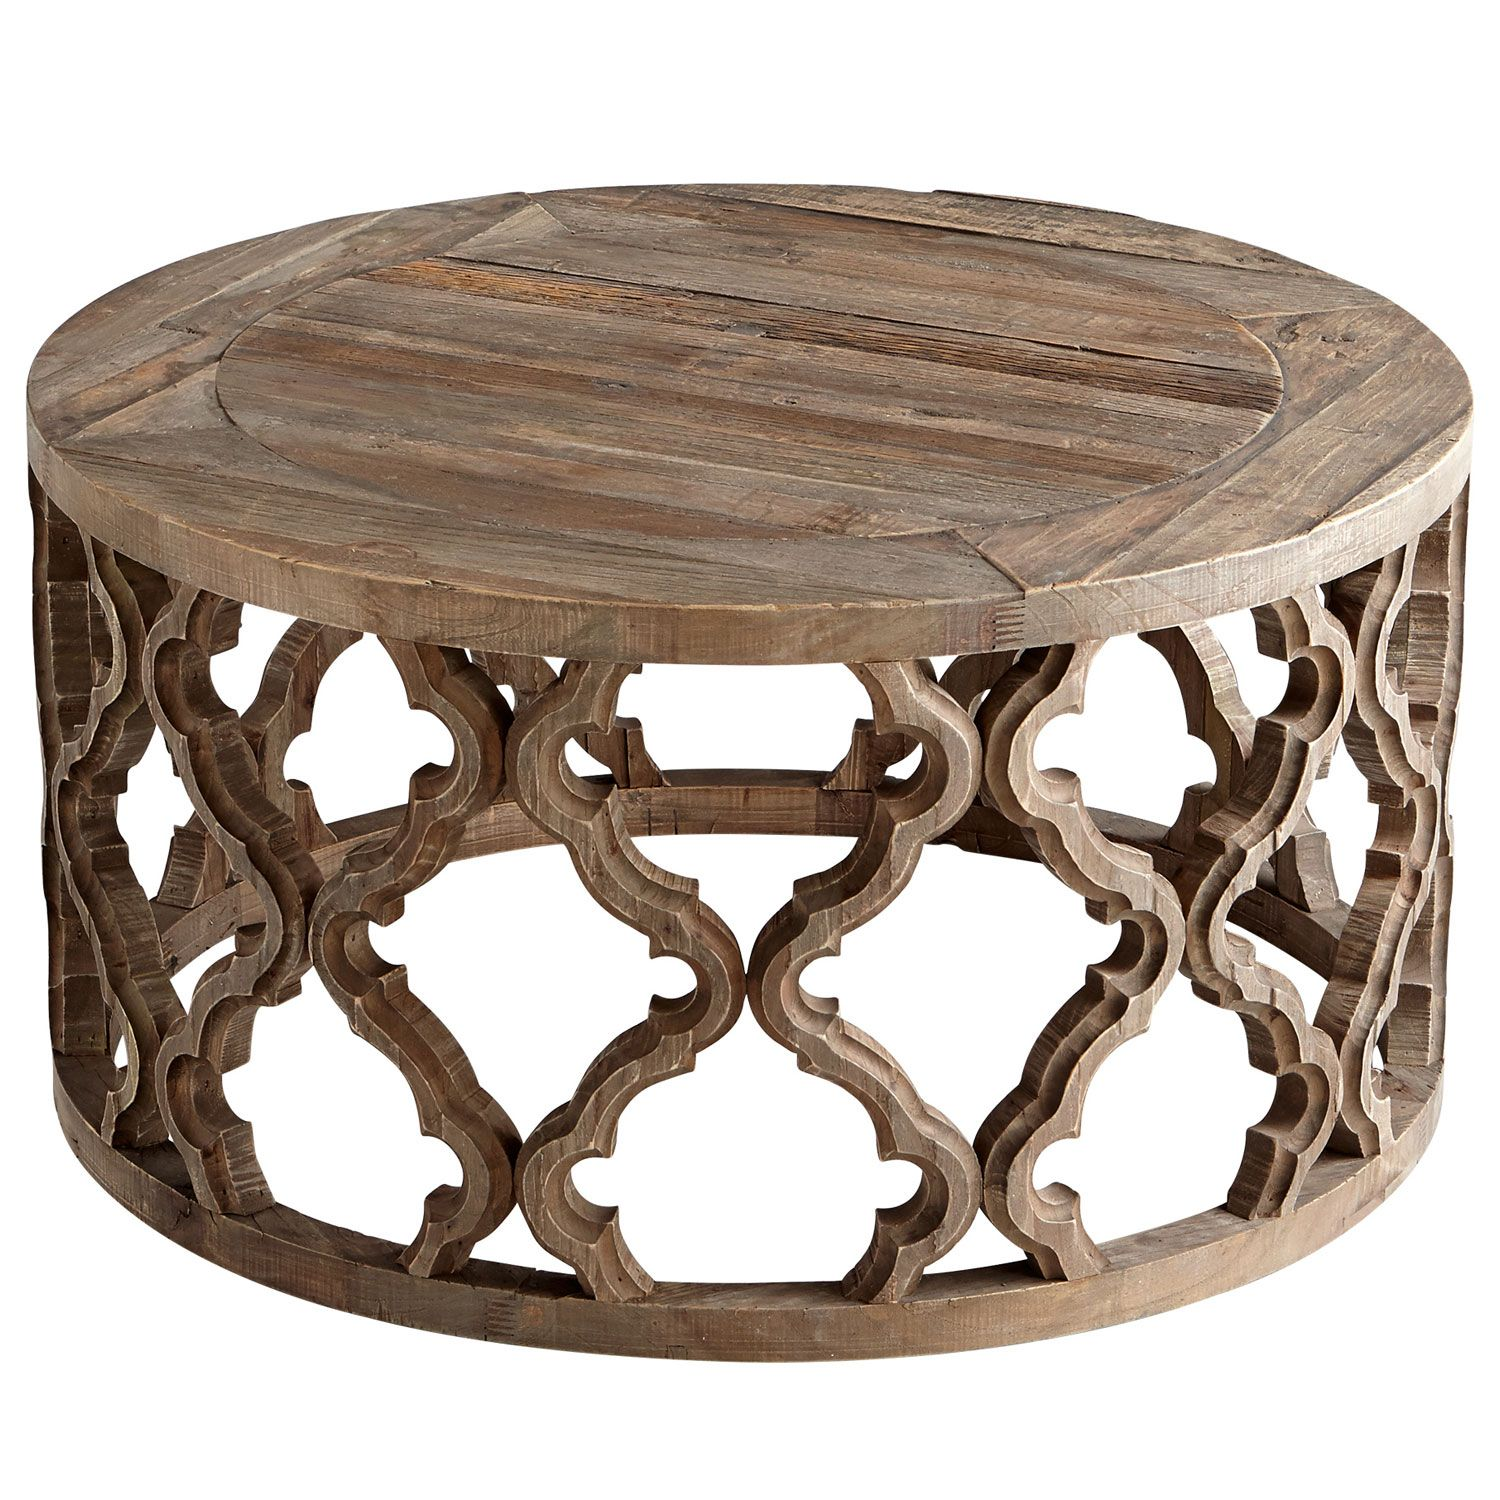 Modern Round Wooden Coffee Table 110: A Modern Furnishing With A Global Vibe, The Sirah Coffee